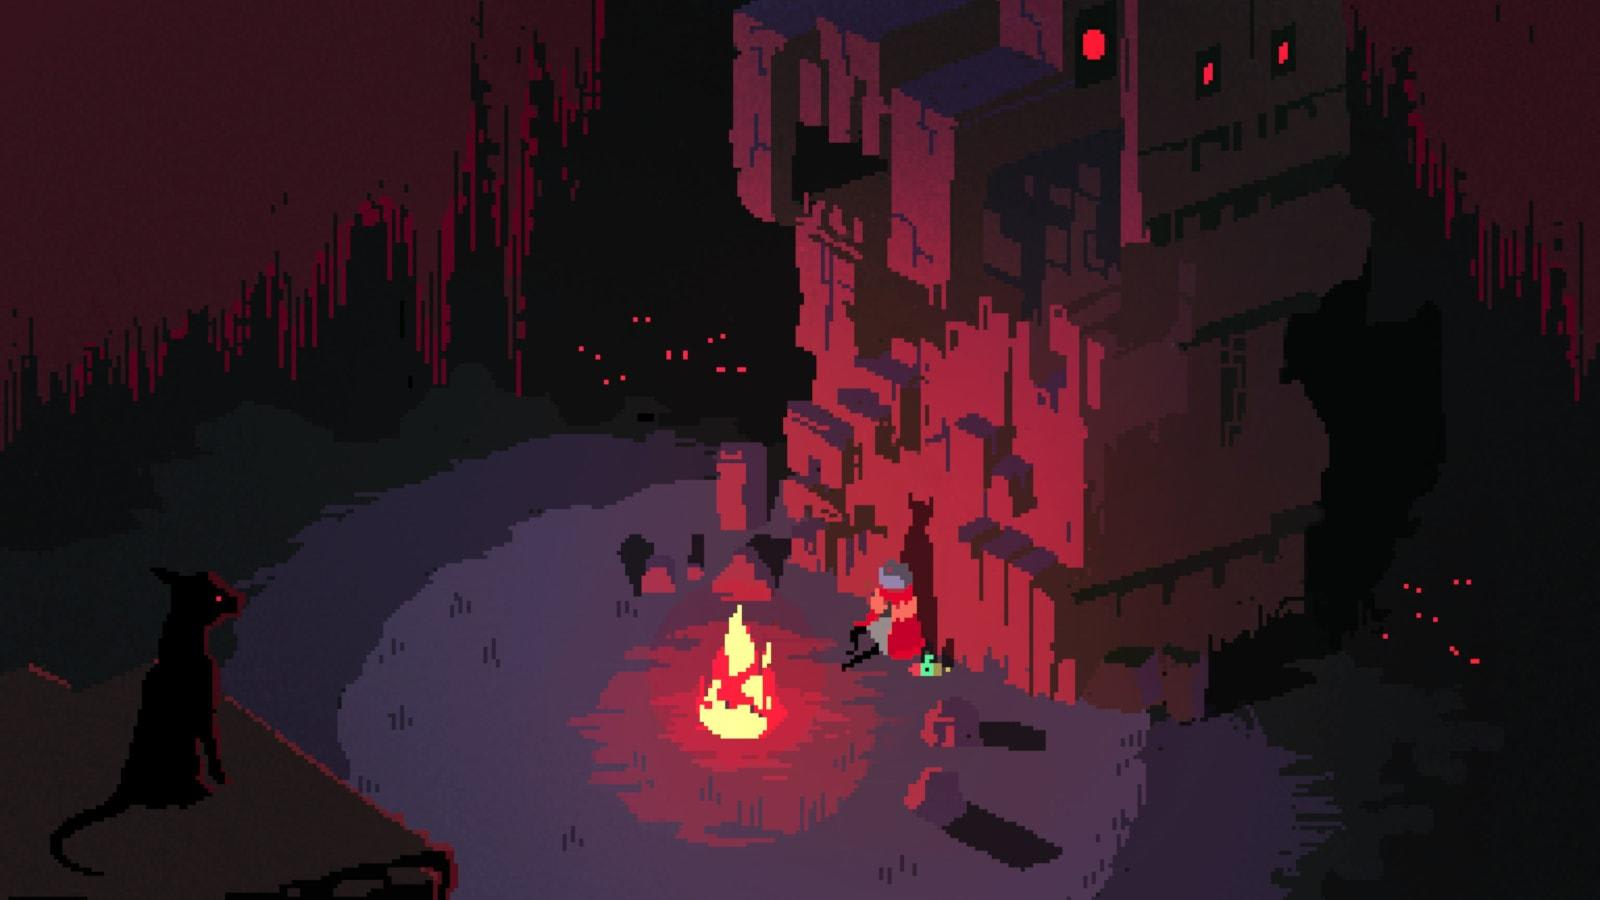 Indie Game Hyper Light Drifter Is Becoming An Animated Series